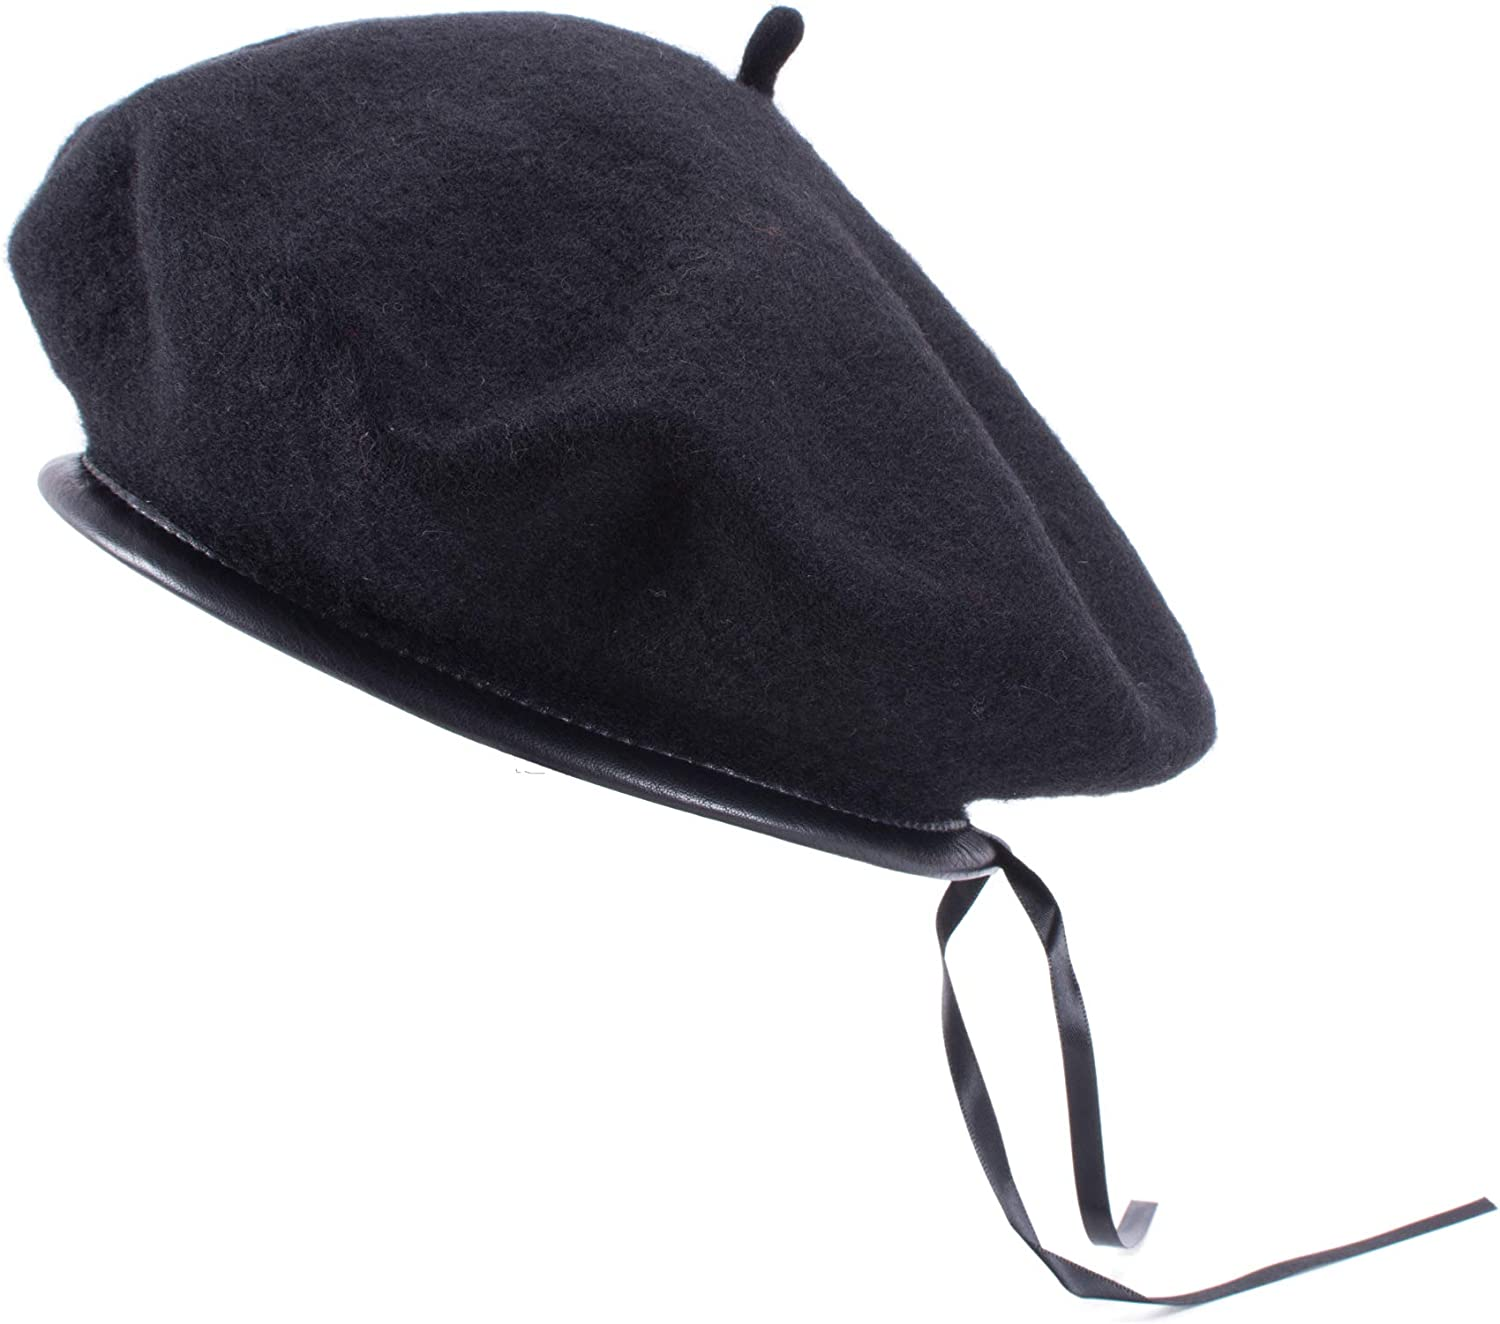 Cren French Style Lightweight Casual Classic Solid Color Wool Beret Beanie Cap Hat Womens